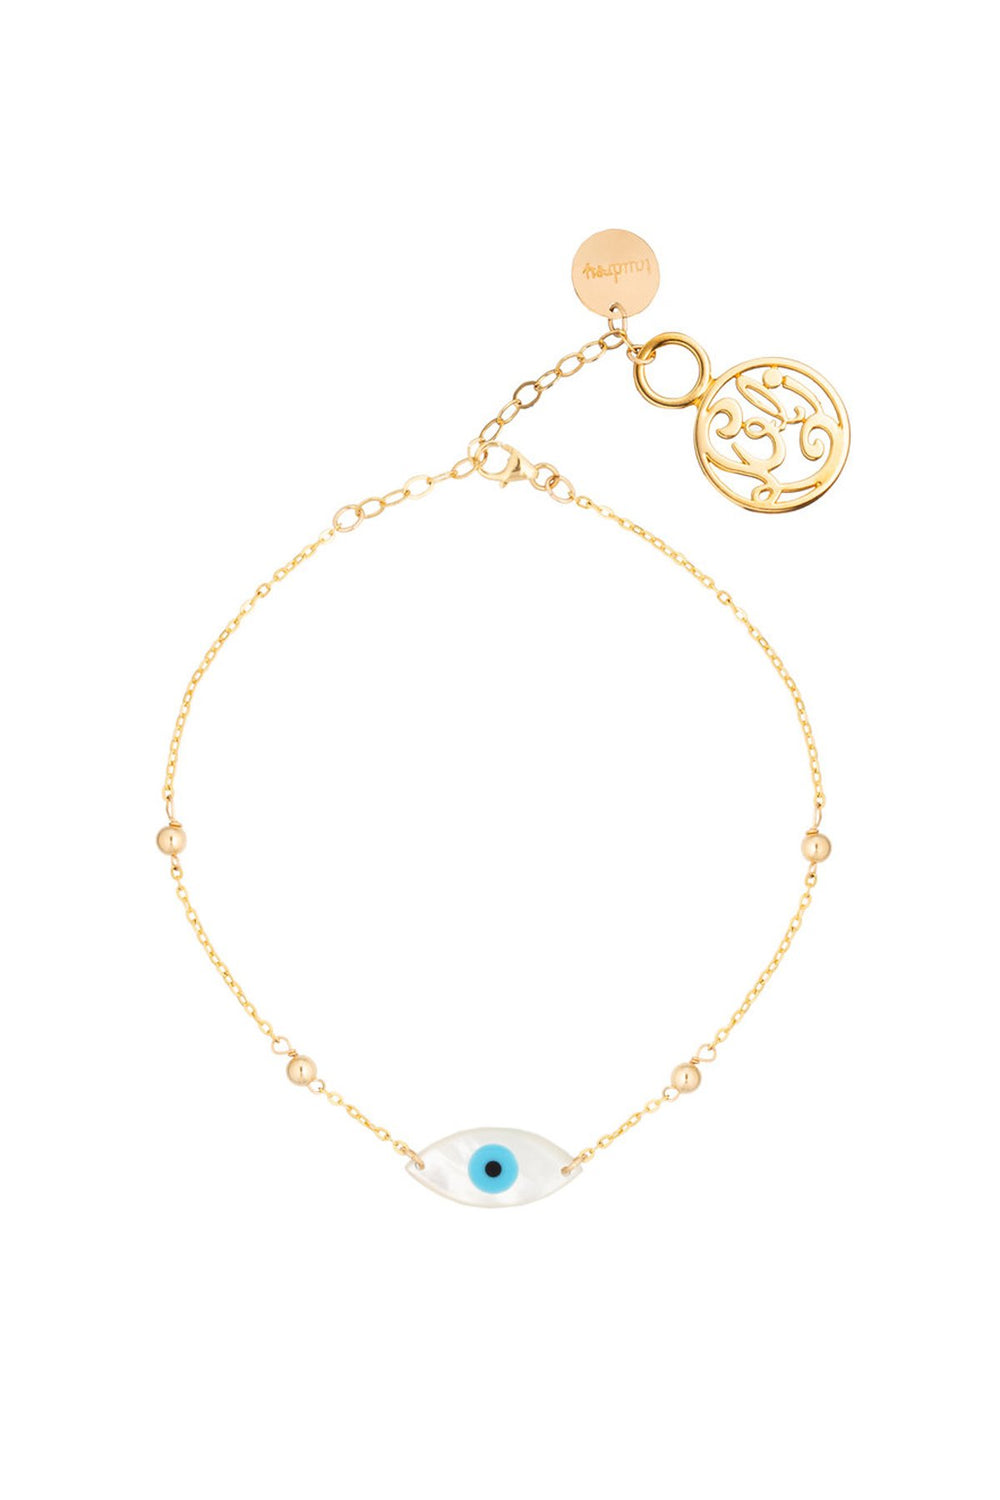 TAUDREY - Anklet • Turquoise